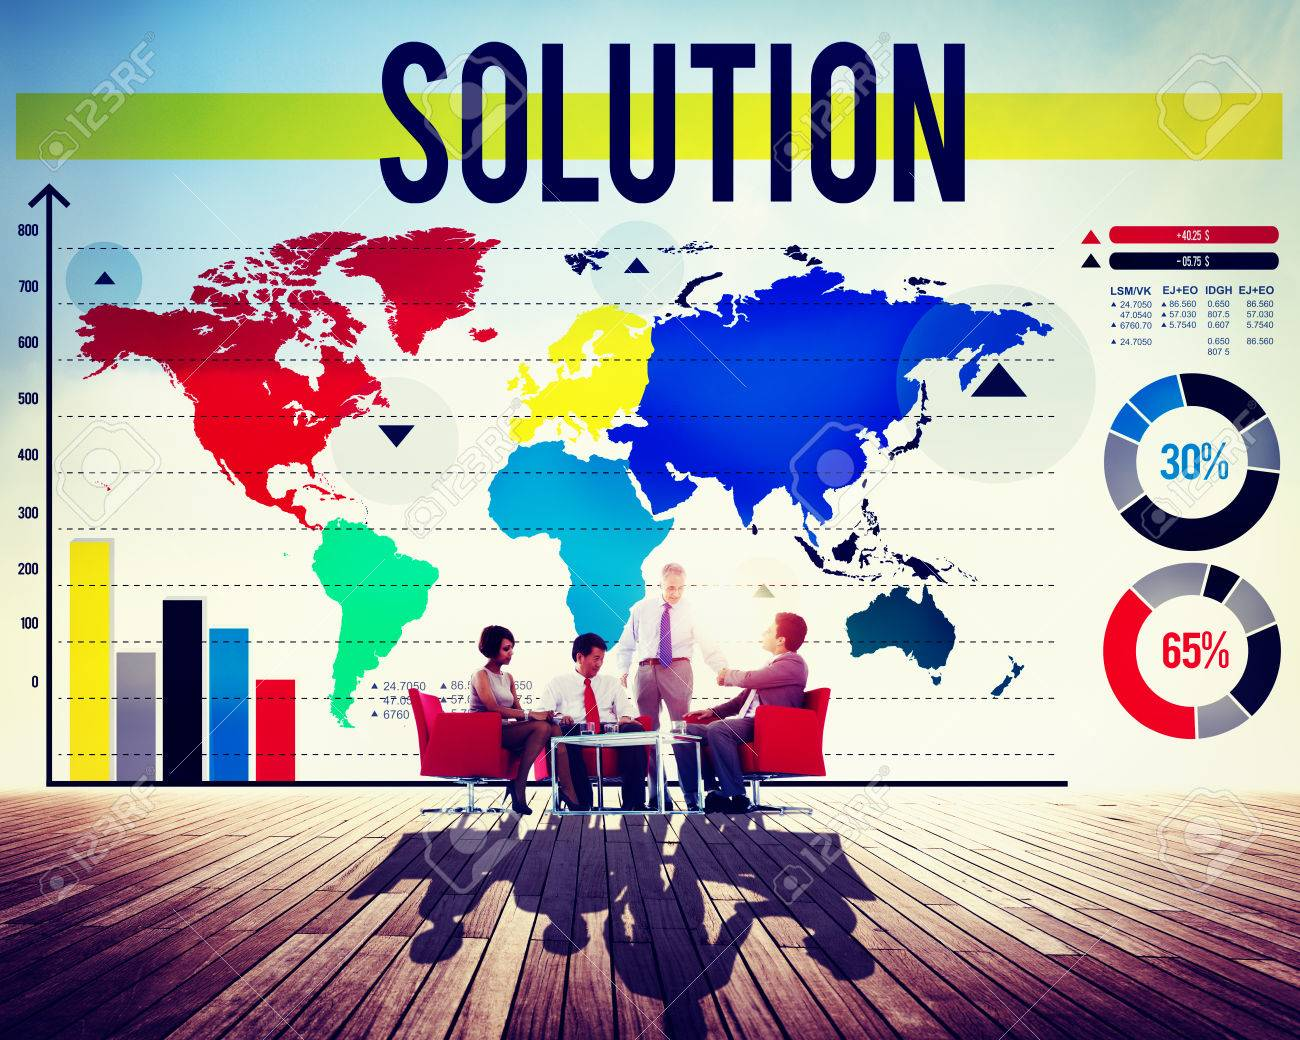 solution problem solving decision answers concept stock photo solution problem solving decision answers concept stock photo 42825816